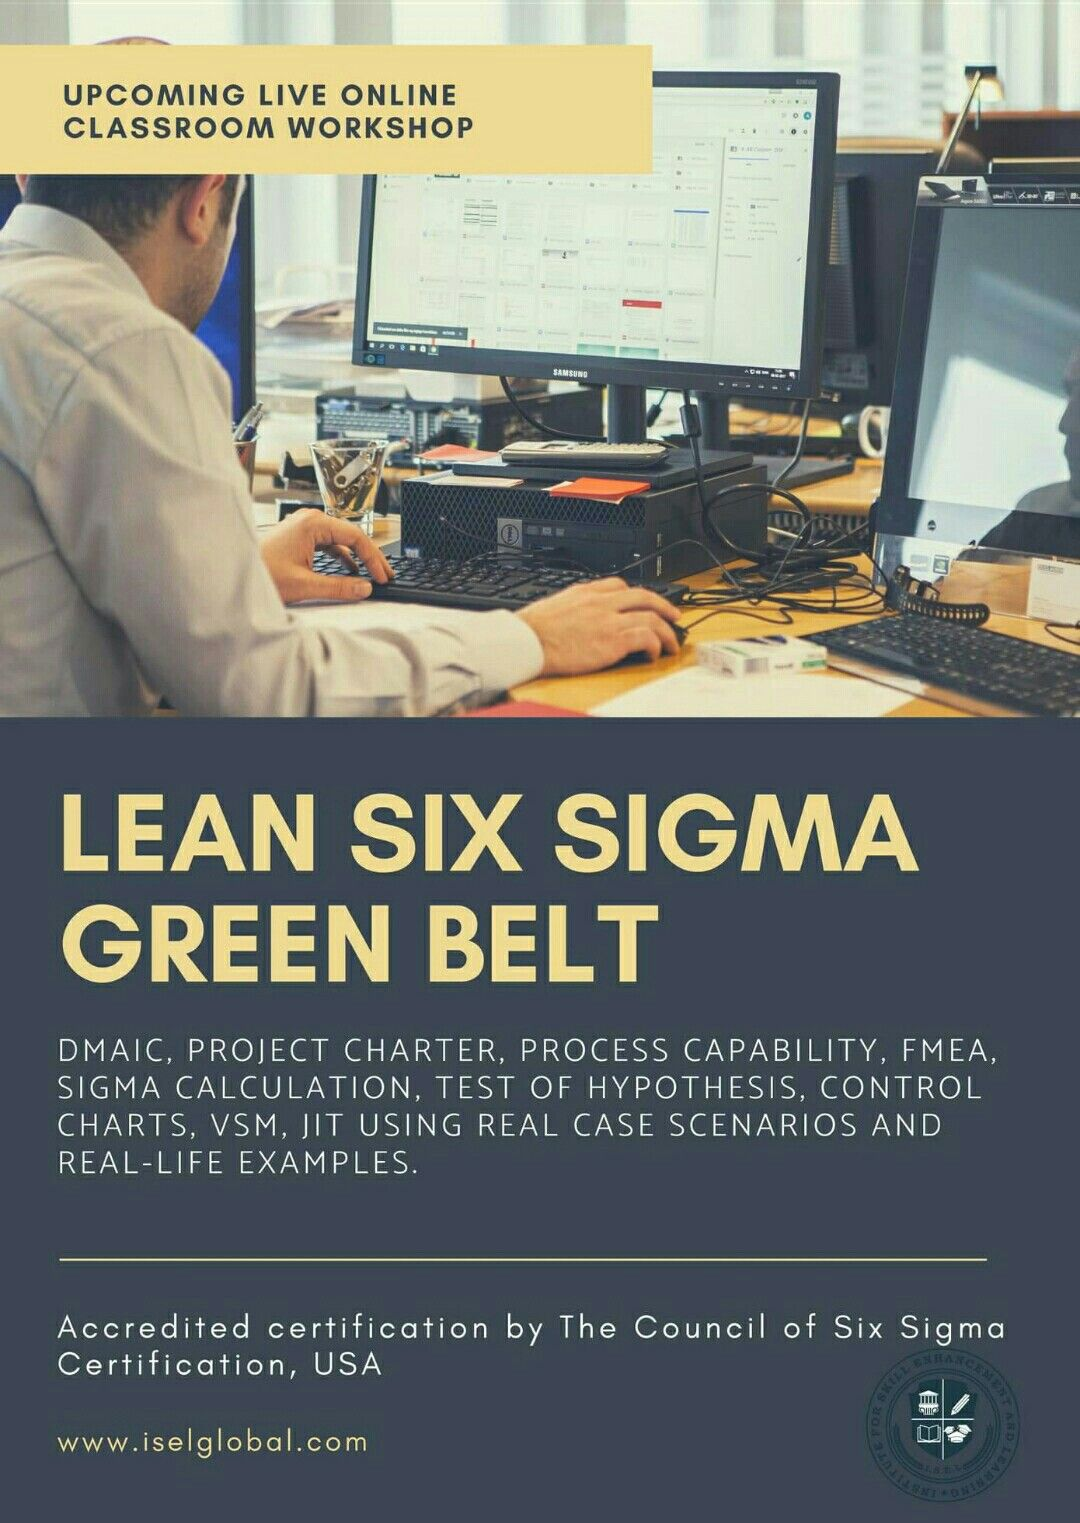 Certified Lean Six Sigma Green Belt Training And Certification By